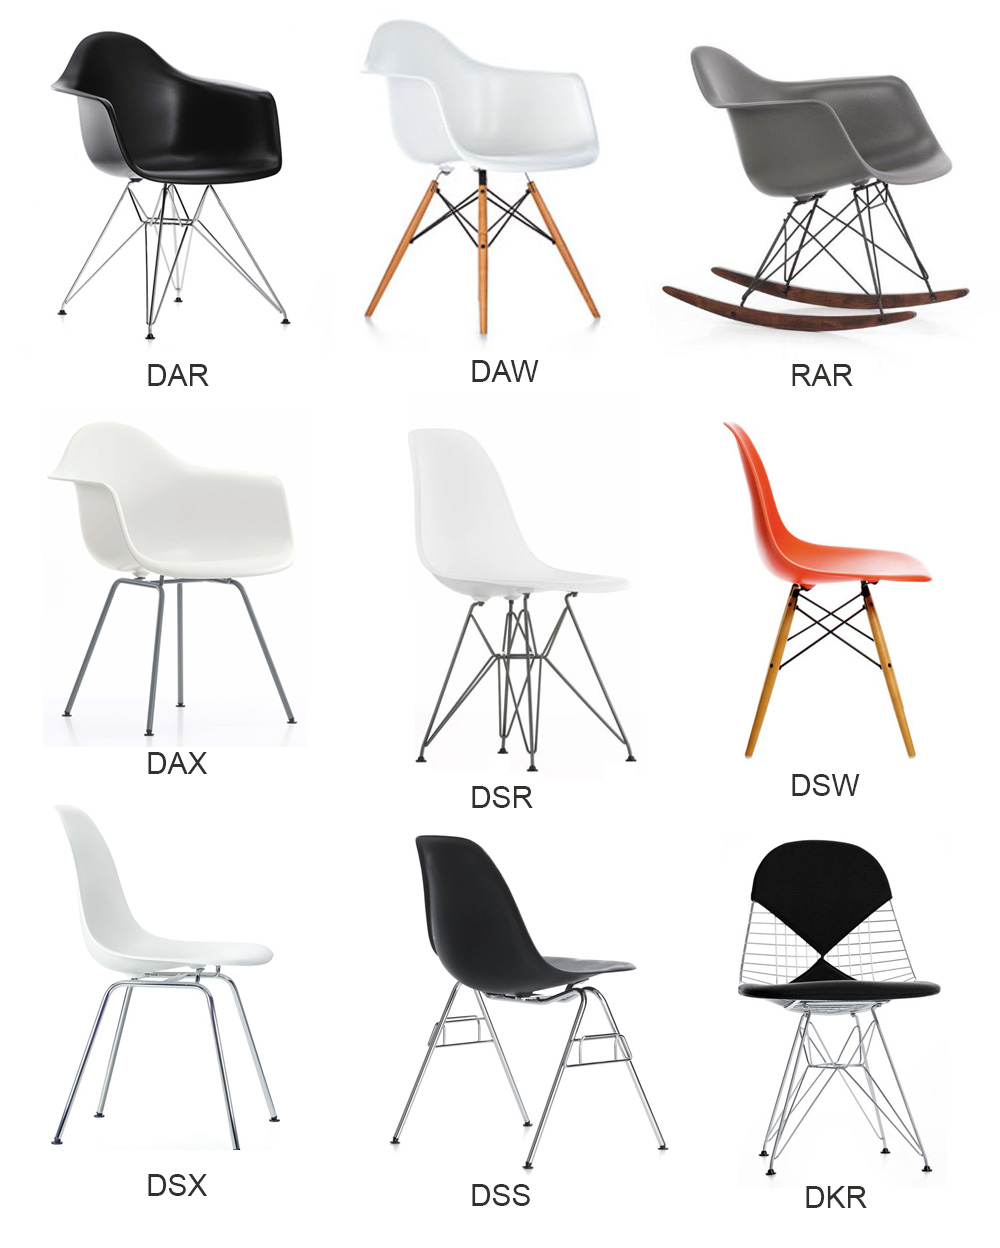 Les Differents Modeles De Chaises Eames